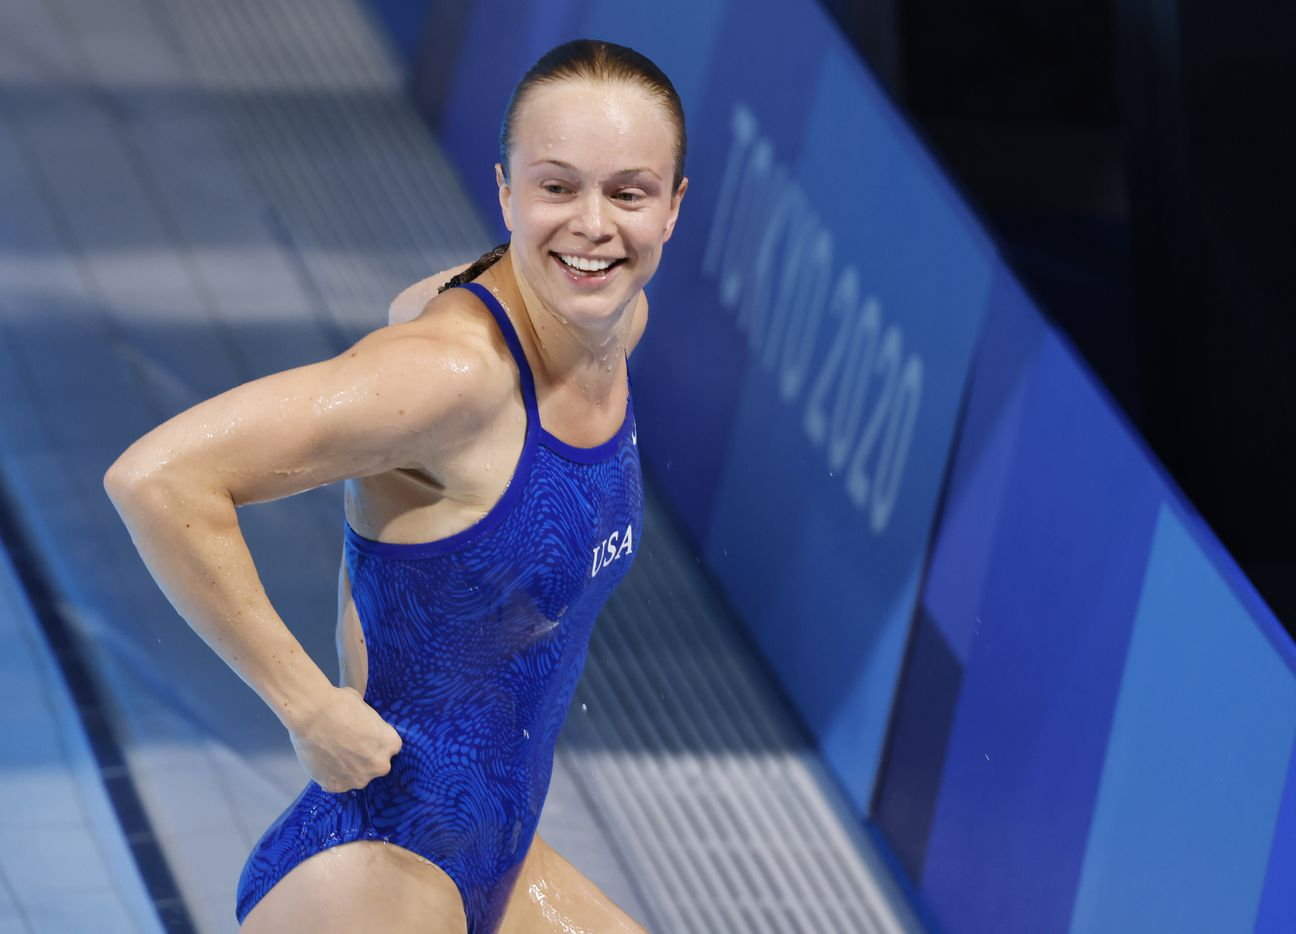 USA's Krysta Palmer is all smiles after completing her last dive in the women's 3 meter springboard final during the postponed 2020 Tokyo Olympics at Tokyo Aquatics Centre, on Sunday, August 1, 2021, in Tokyo, Japan. Palmer finished 3rd with a total score of 343.75 to earn a bronze medal. (Vernon Bryant/The Dallas Morning News)